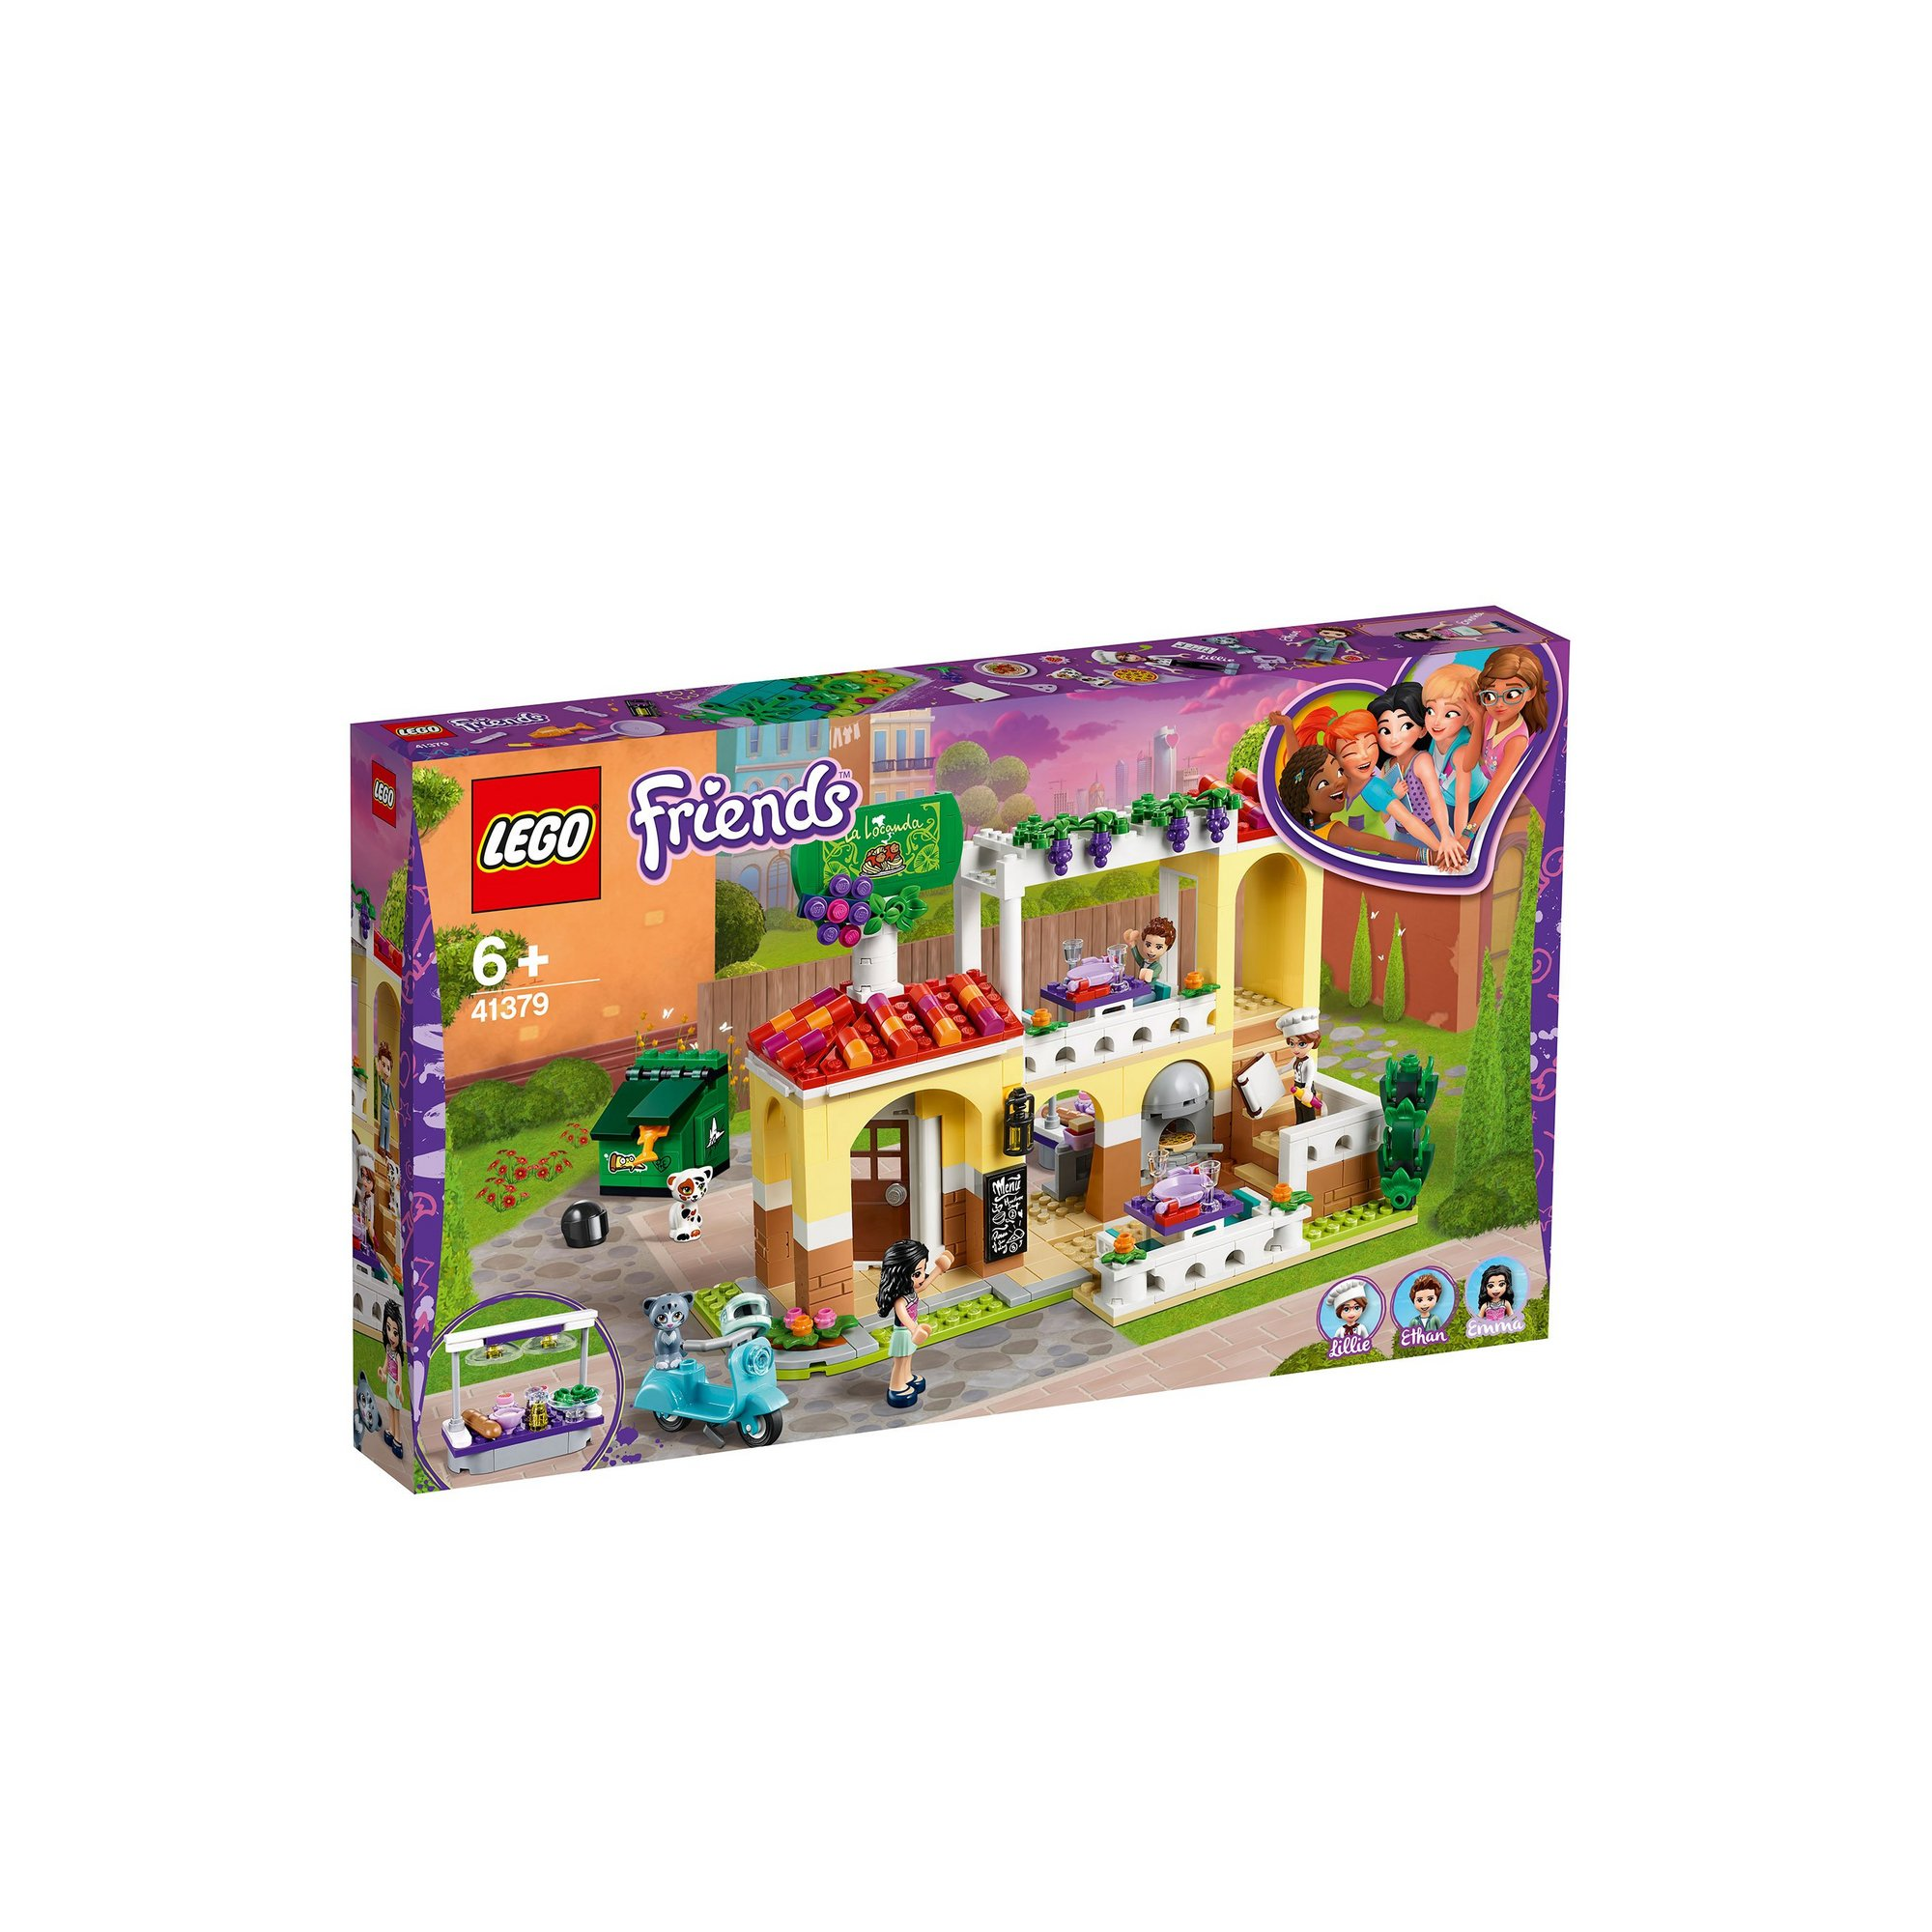 Image of LEGO Friends Heartlake City Restaurant